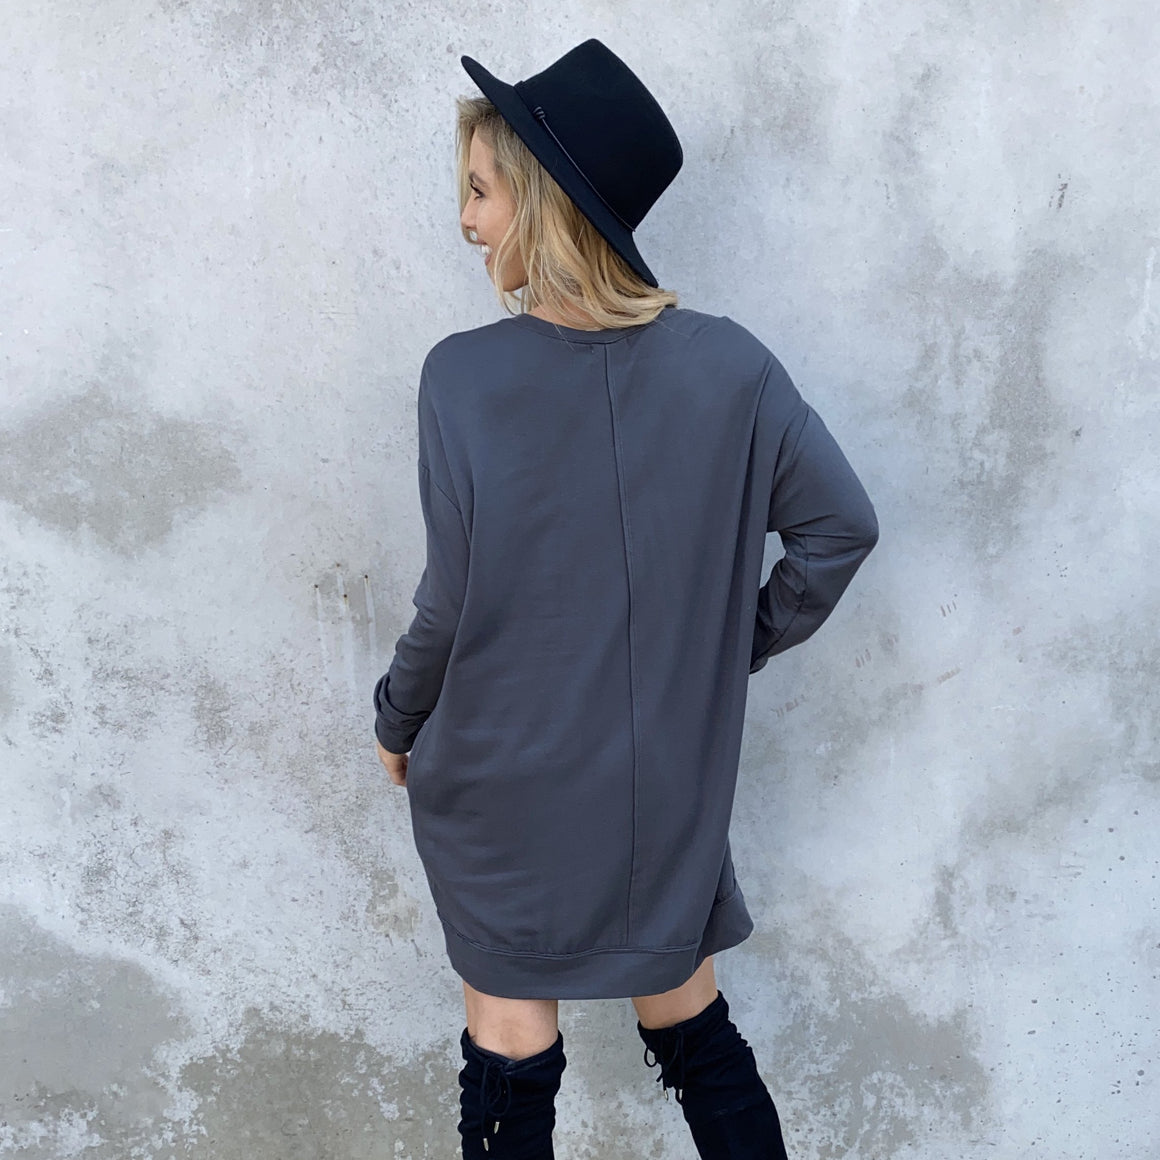 Cold Front Charcoal Grey Fleece Sweater Dress - Dainty Hooligan